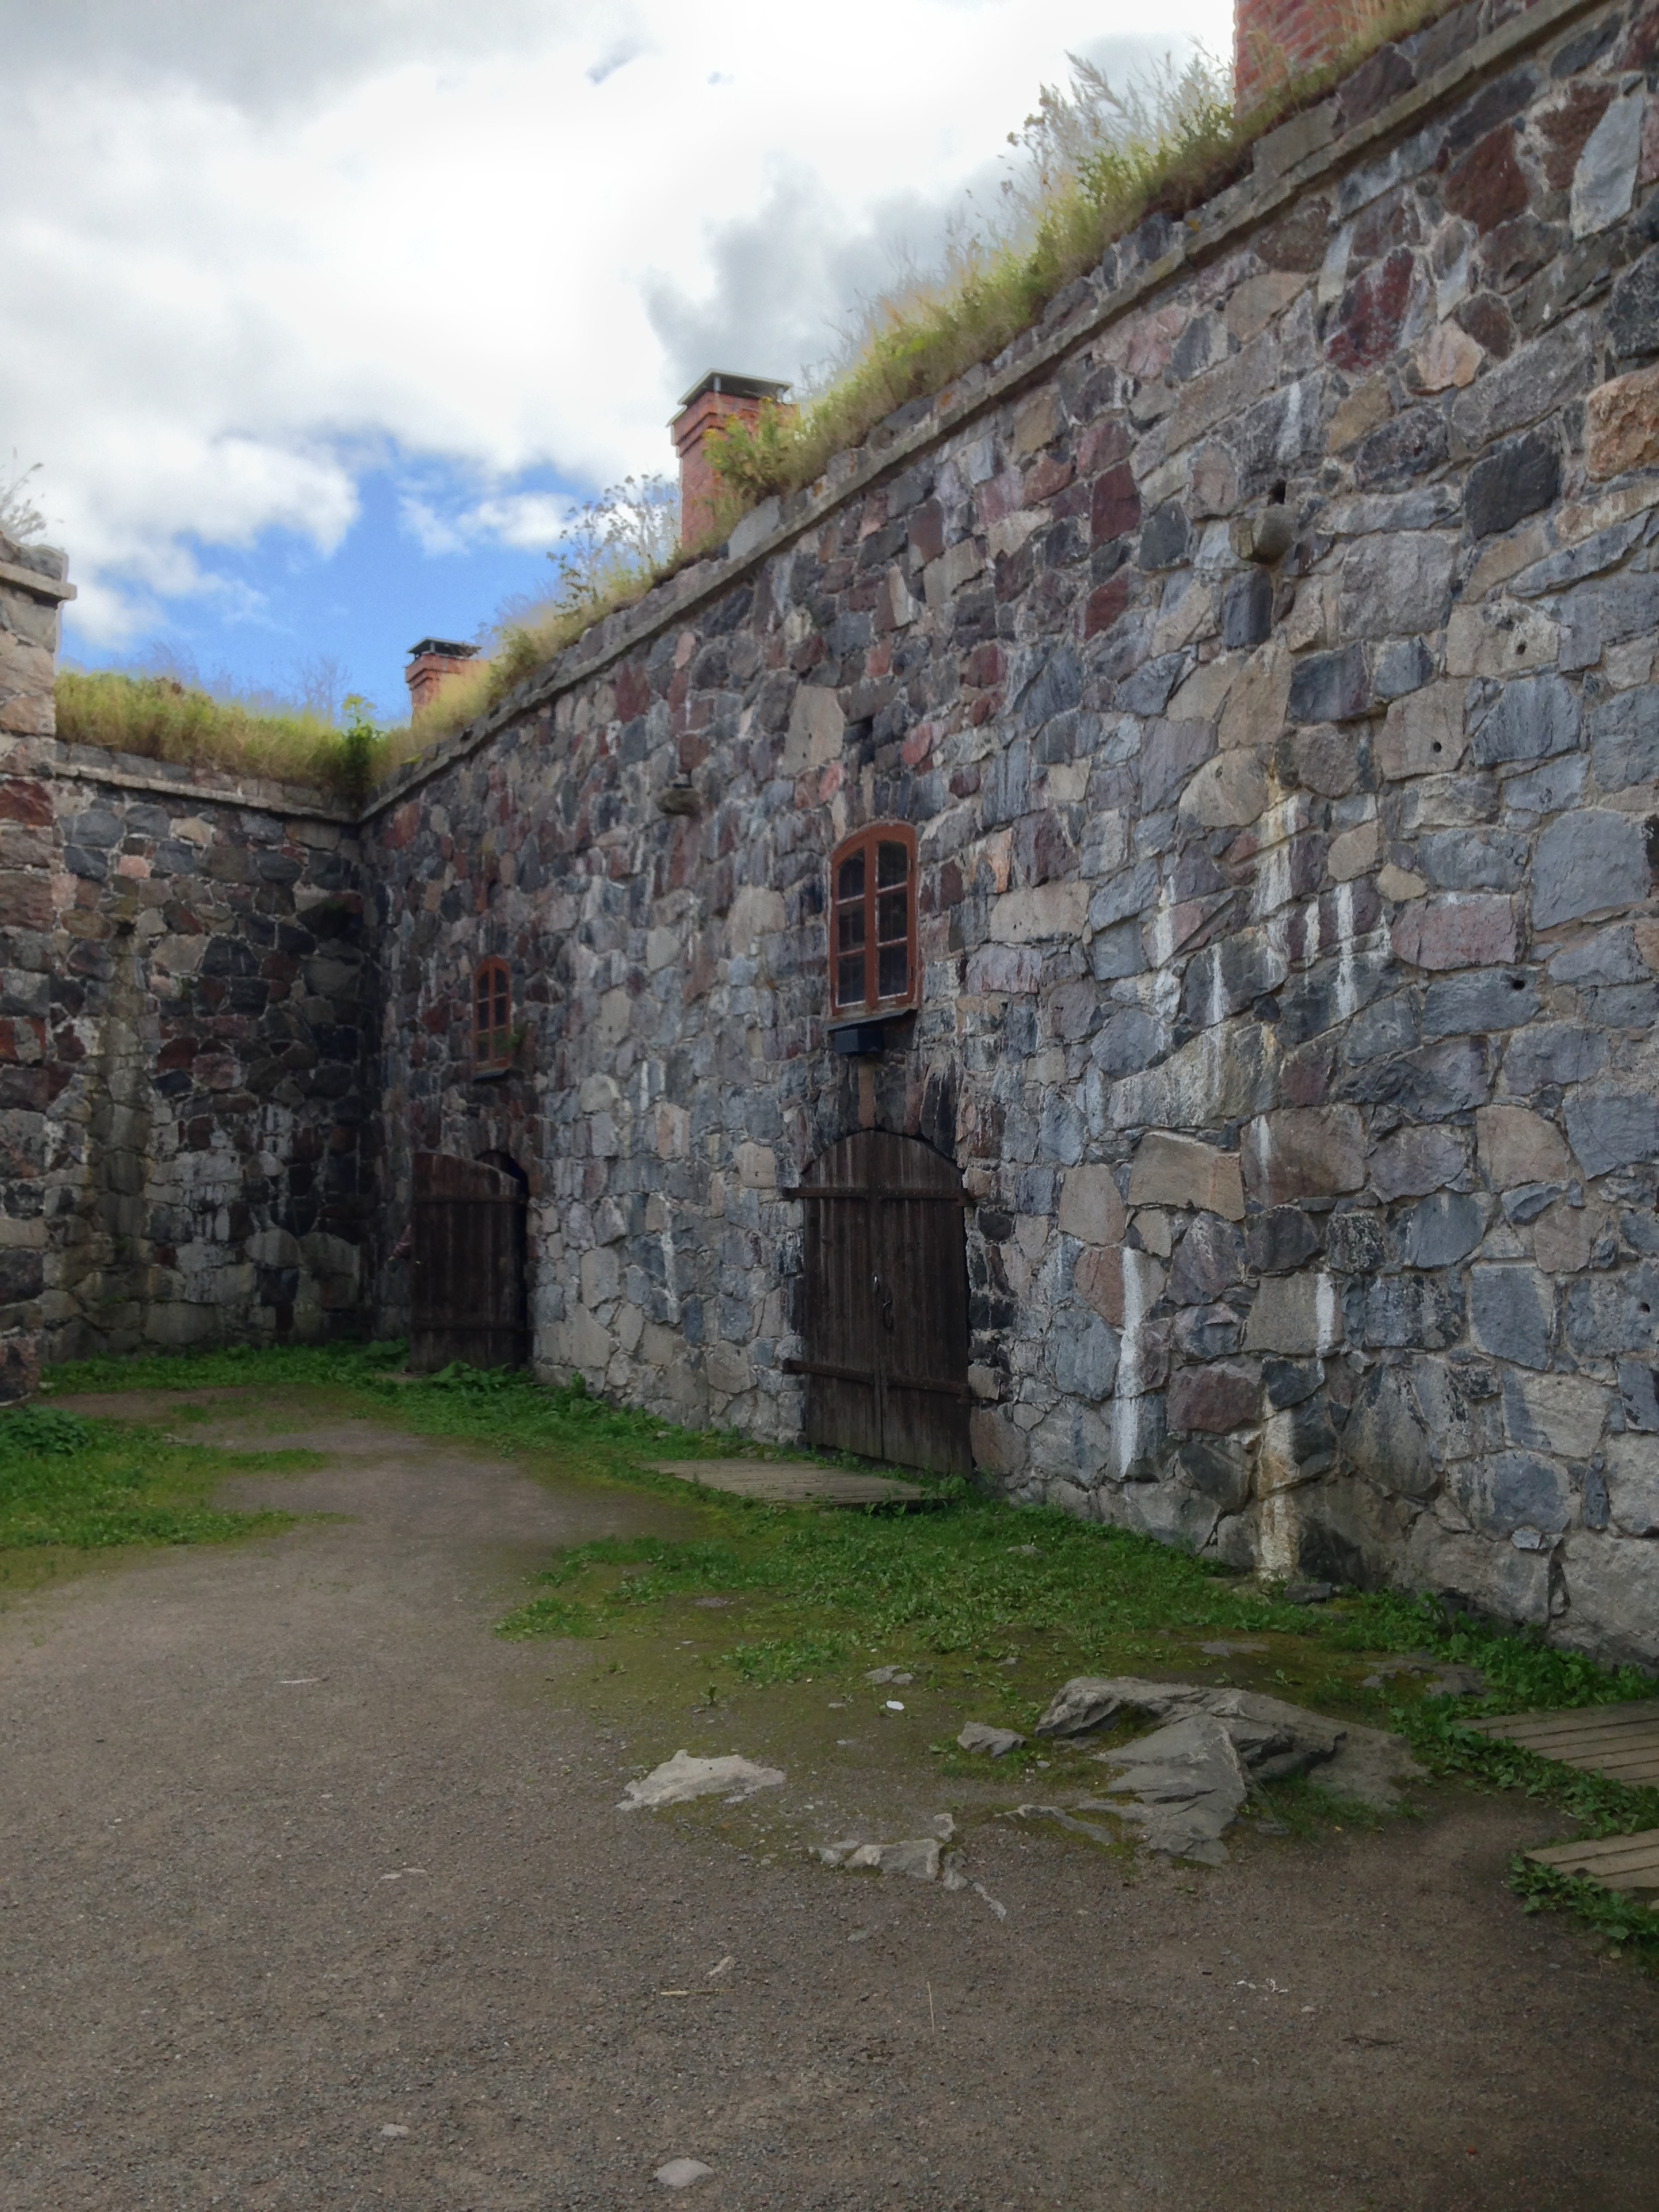 The interior of the fortress at Suomenlinna